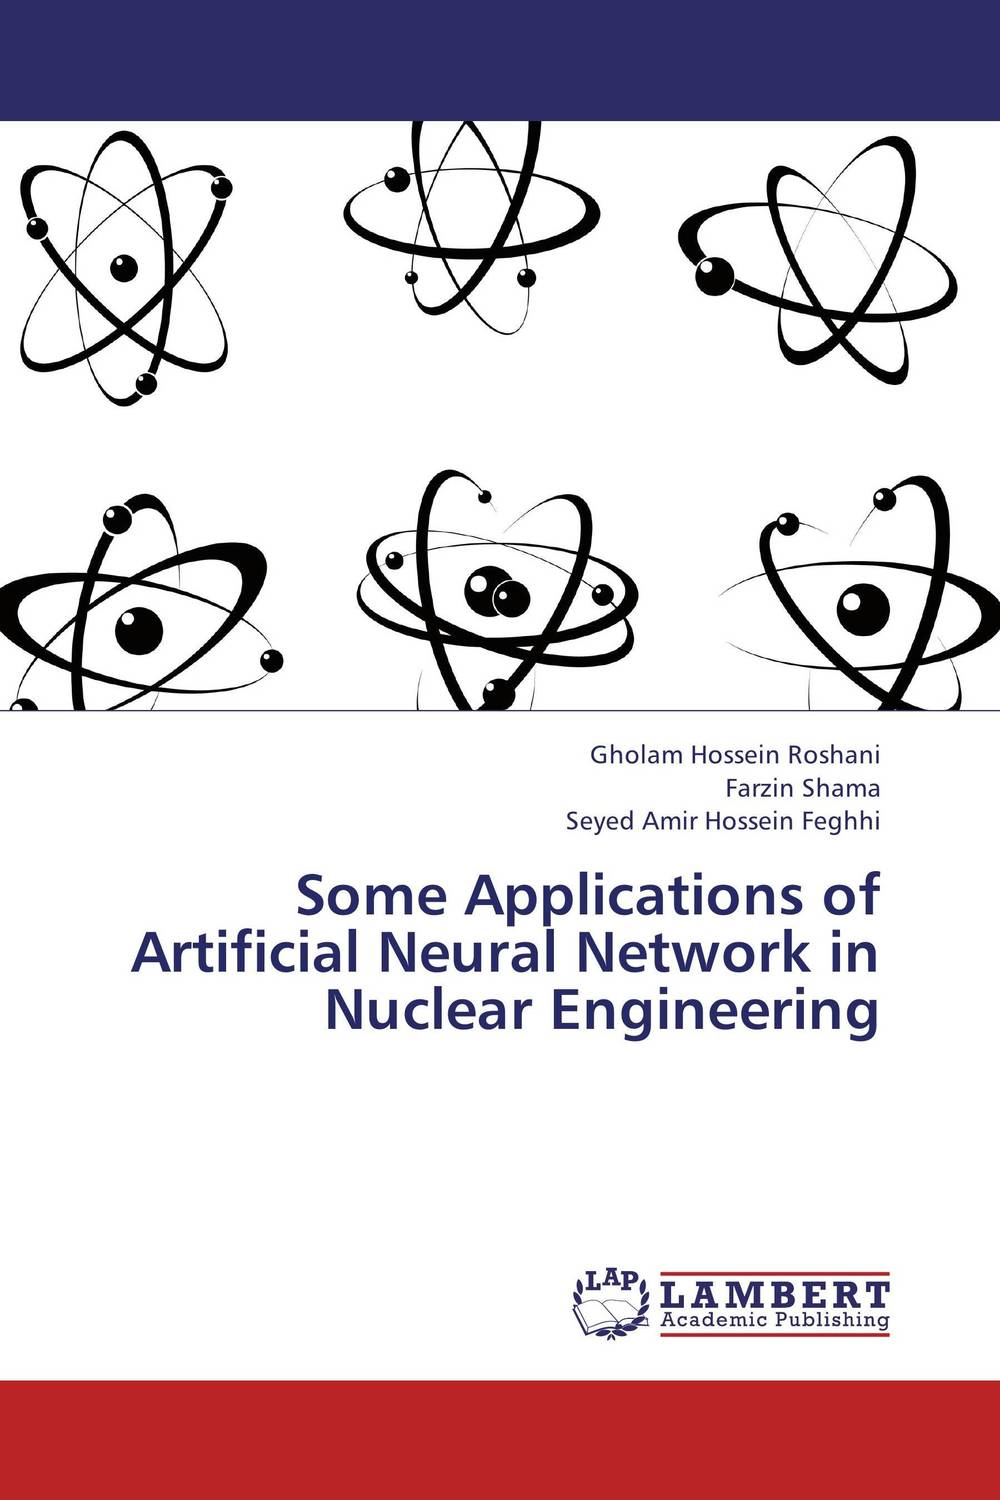 Some Applications of Artificial Neural Network in Nuclear Engineering software effort estimation using artificial neural networks